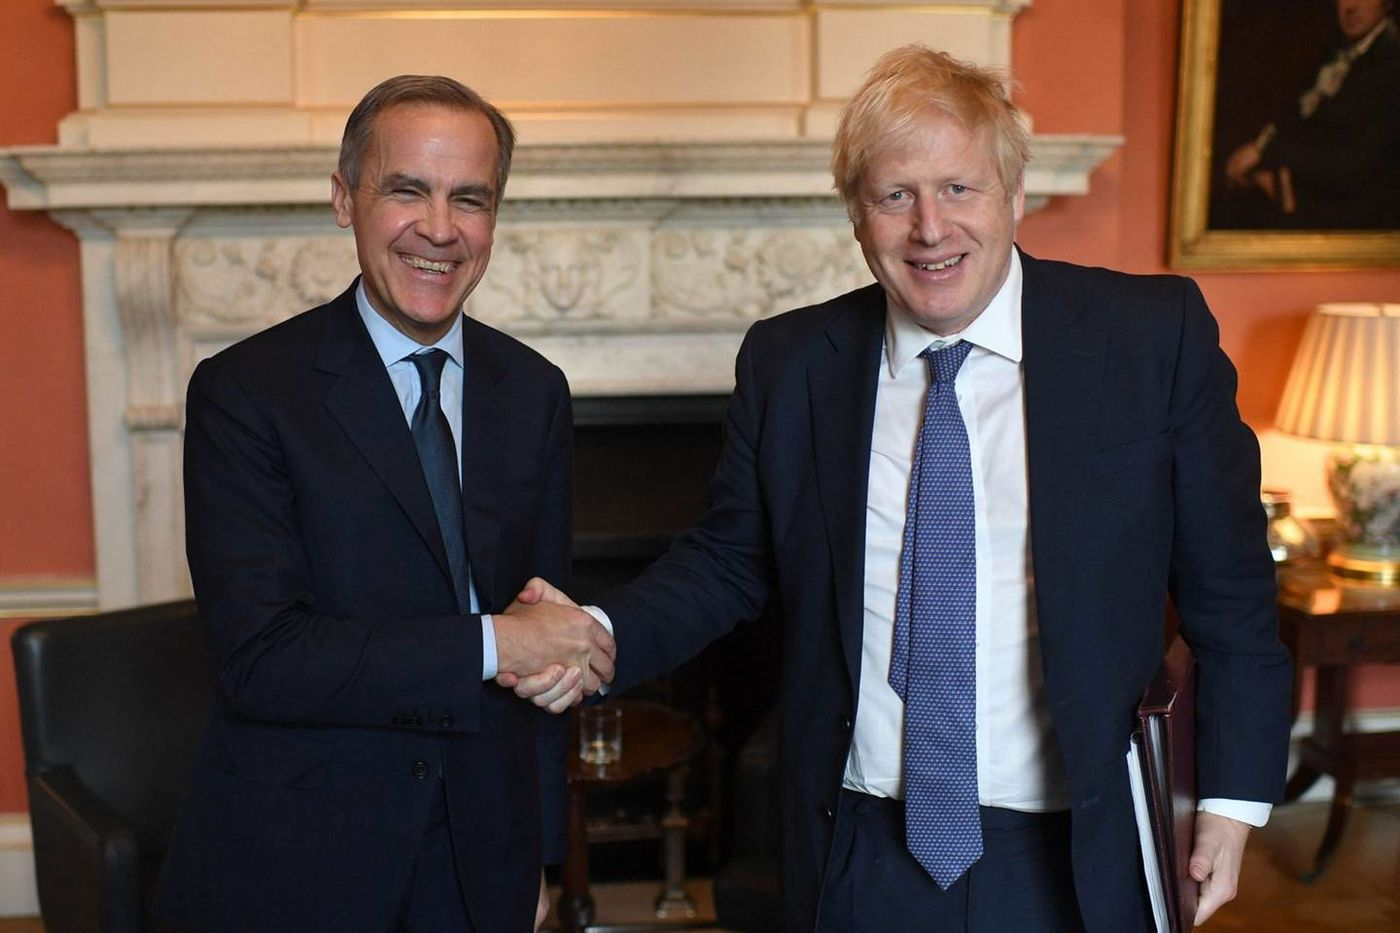 Mark Carney, left, is an adviser to U.K. Prime Minister Boris Johnson for the COP26 climate summit due to take place in November in Glasgow, Scotland